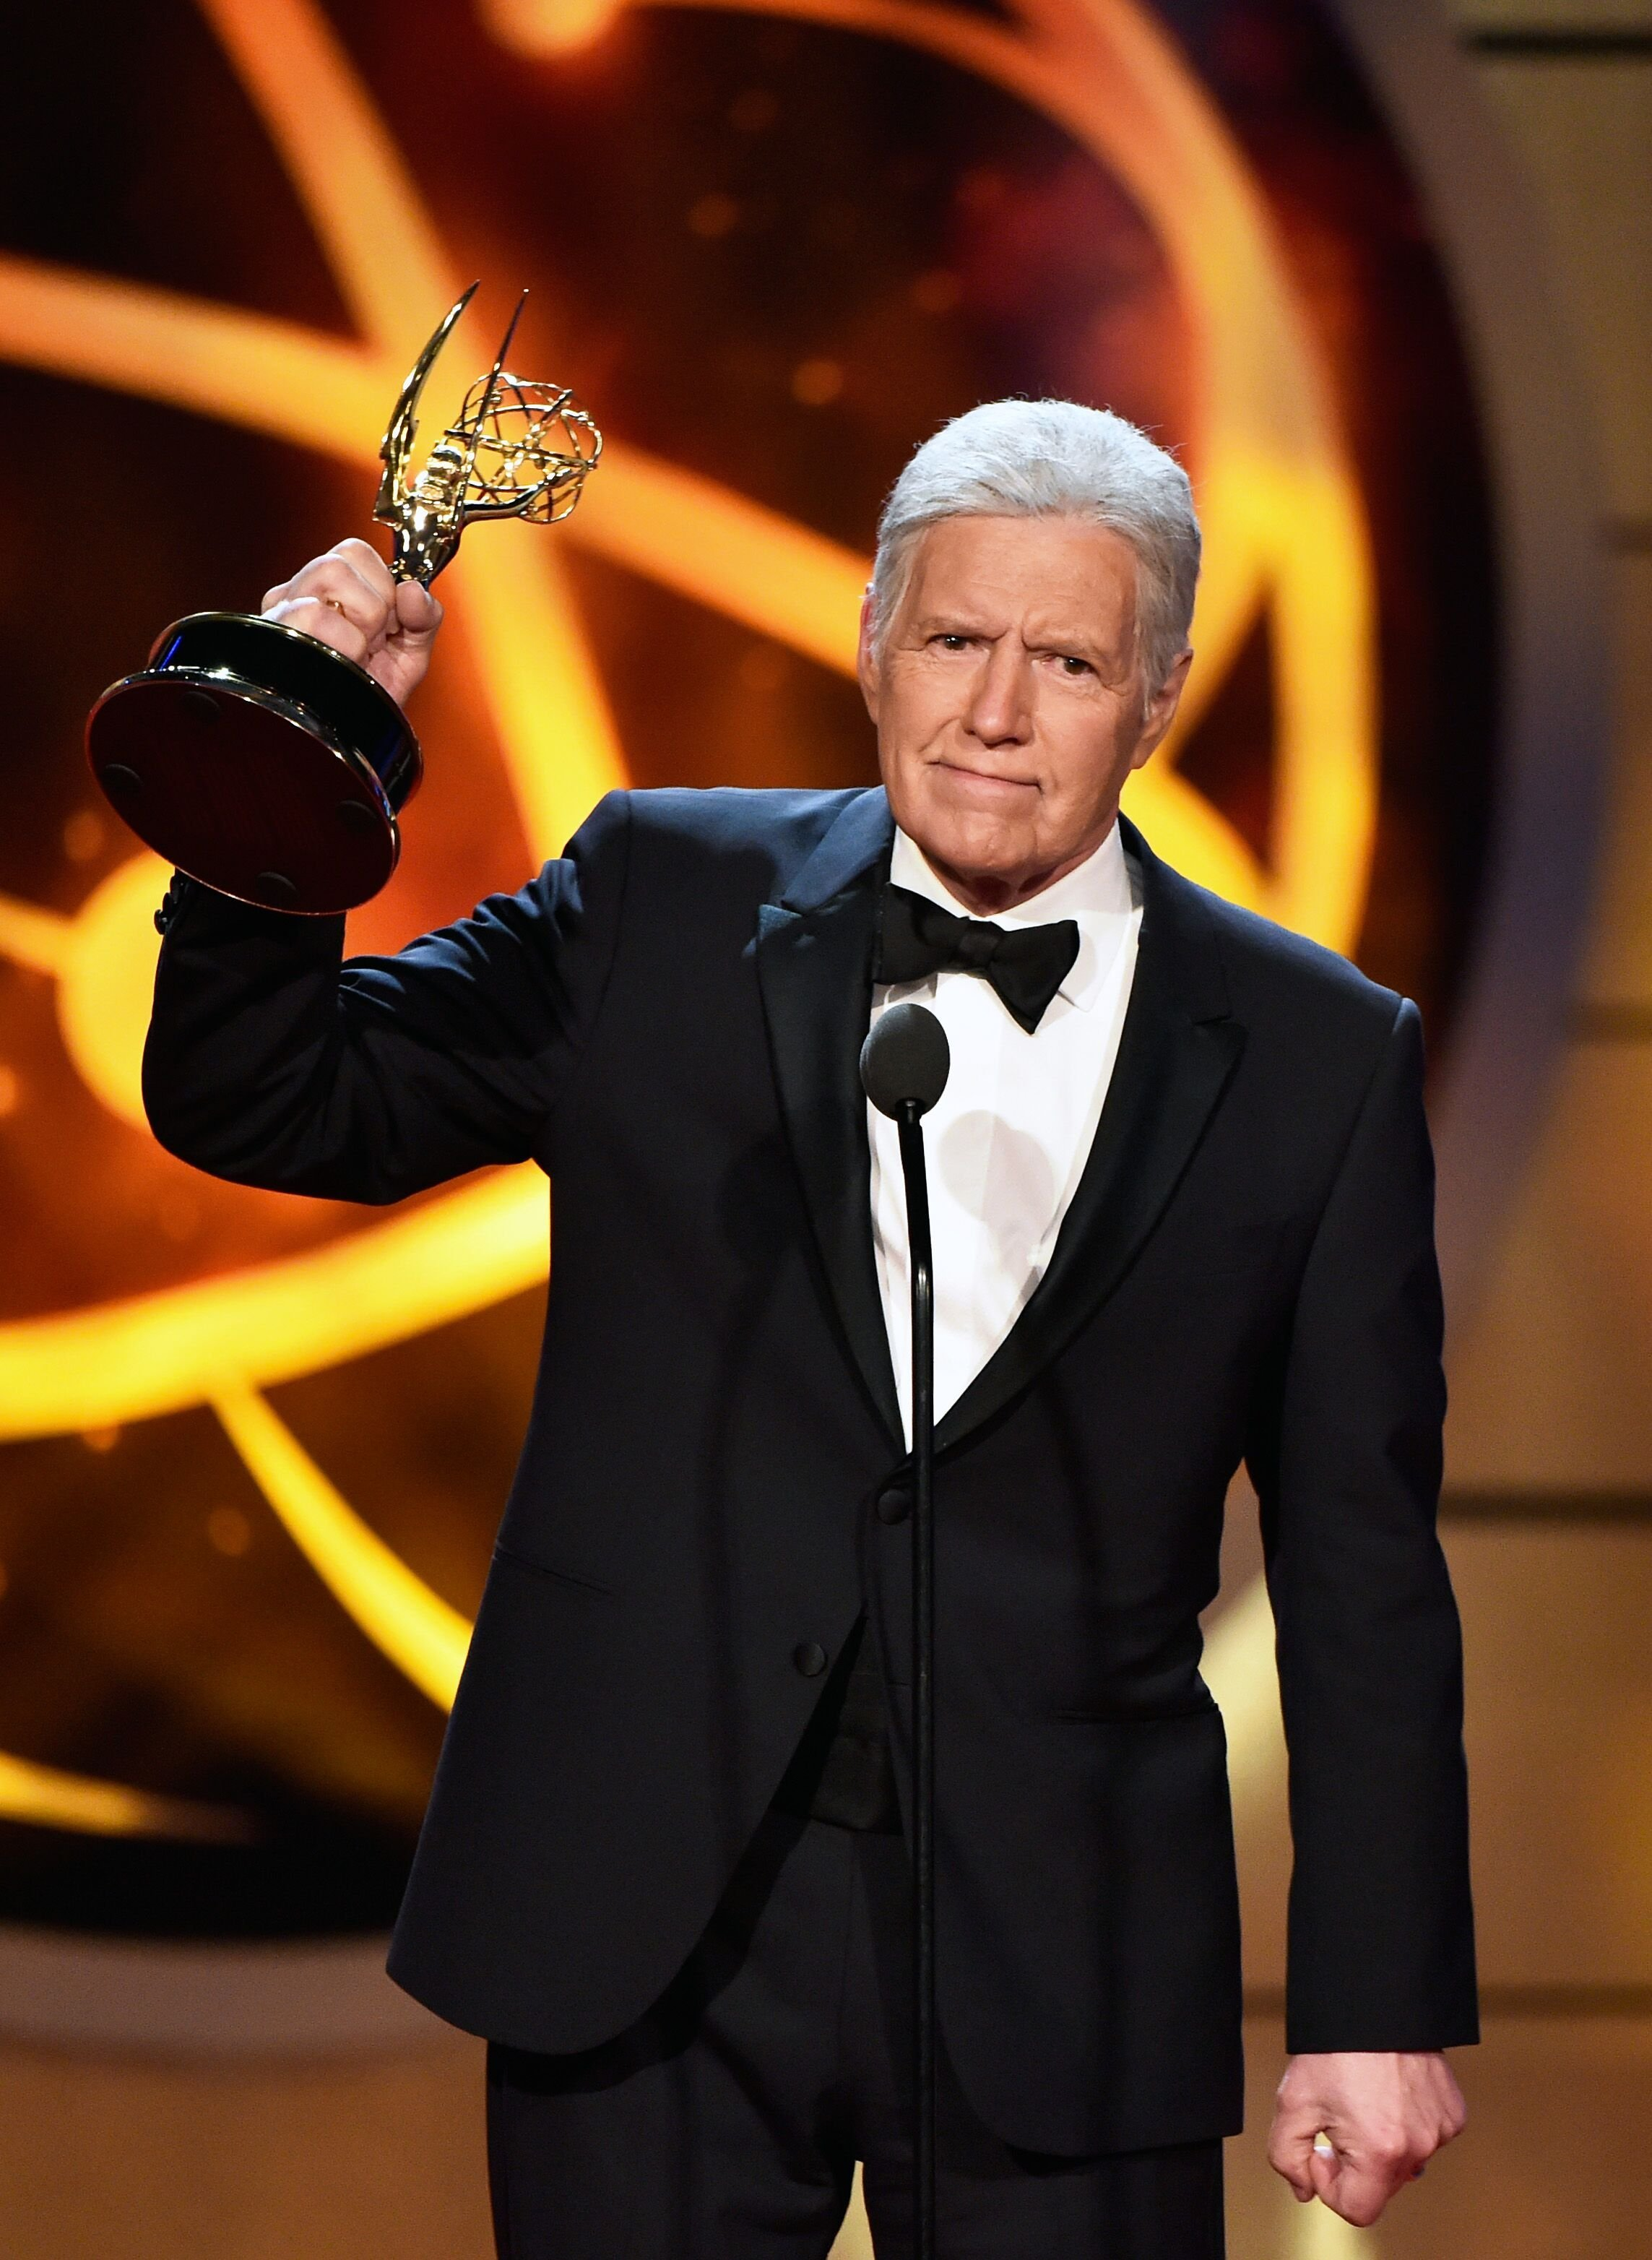 Alex Trebek accepts a Daytime Emmy Award for Outstanding Game Show Host. | Source: Getty Images